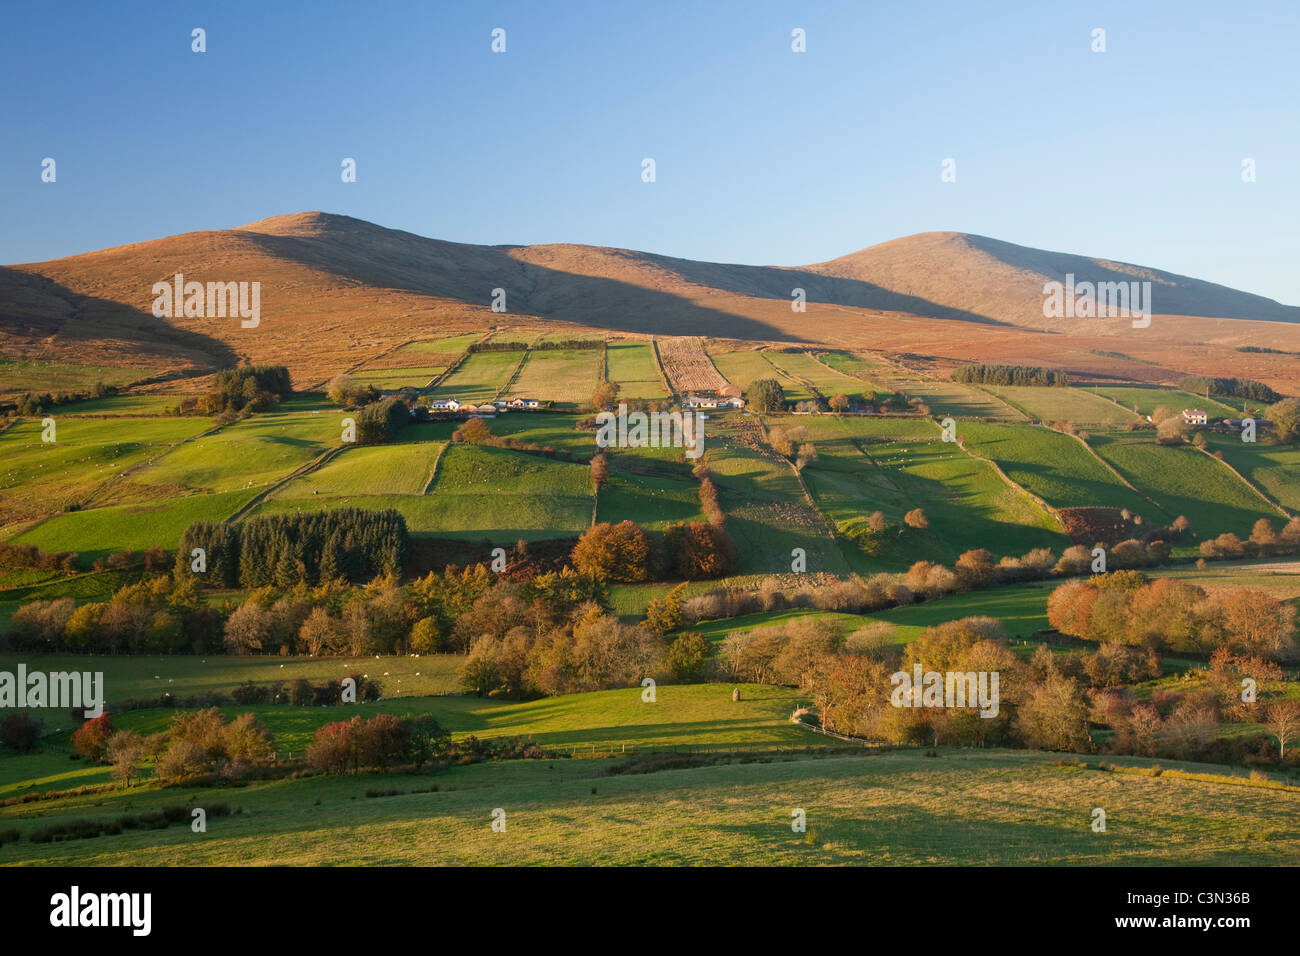 Sawel and Dart mountains rise above Glenelly Valley, Sperrin Mountains, County Tyrone, Northern Ireland. - Stock Image